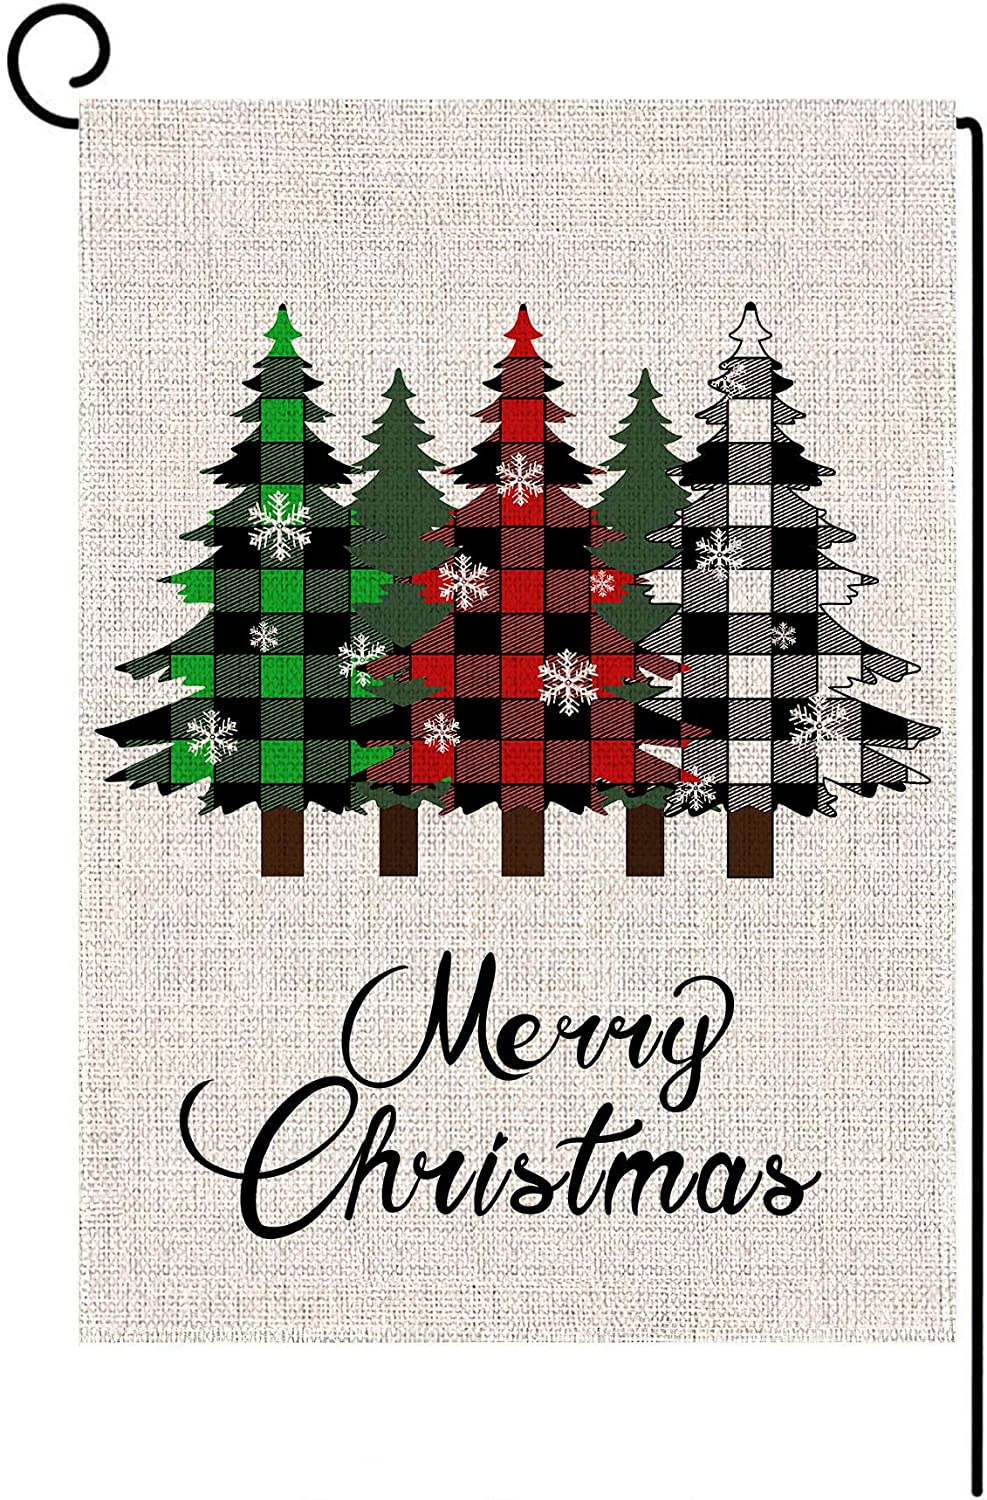 LANMEI Merry Christmas Garden Flag Vertical Double Sided Winter Buffalo Plaid Tree Yard Flag, Christmas Holiday Rustic Yard Outdoor Decoration 12.5 x 18 Inch